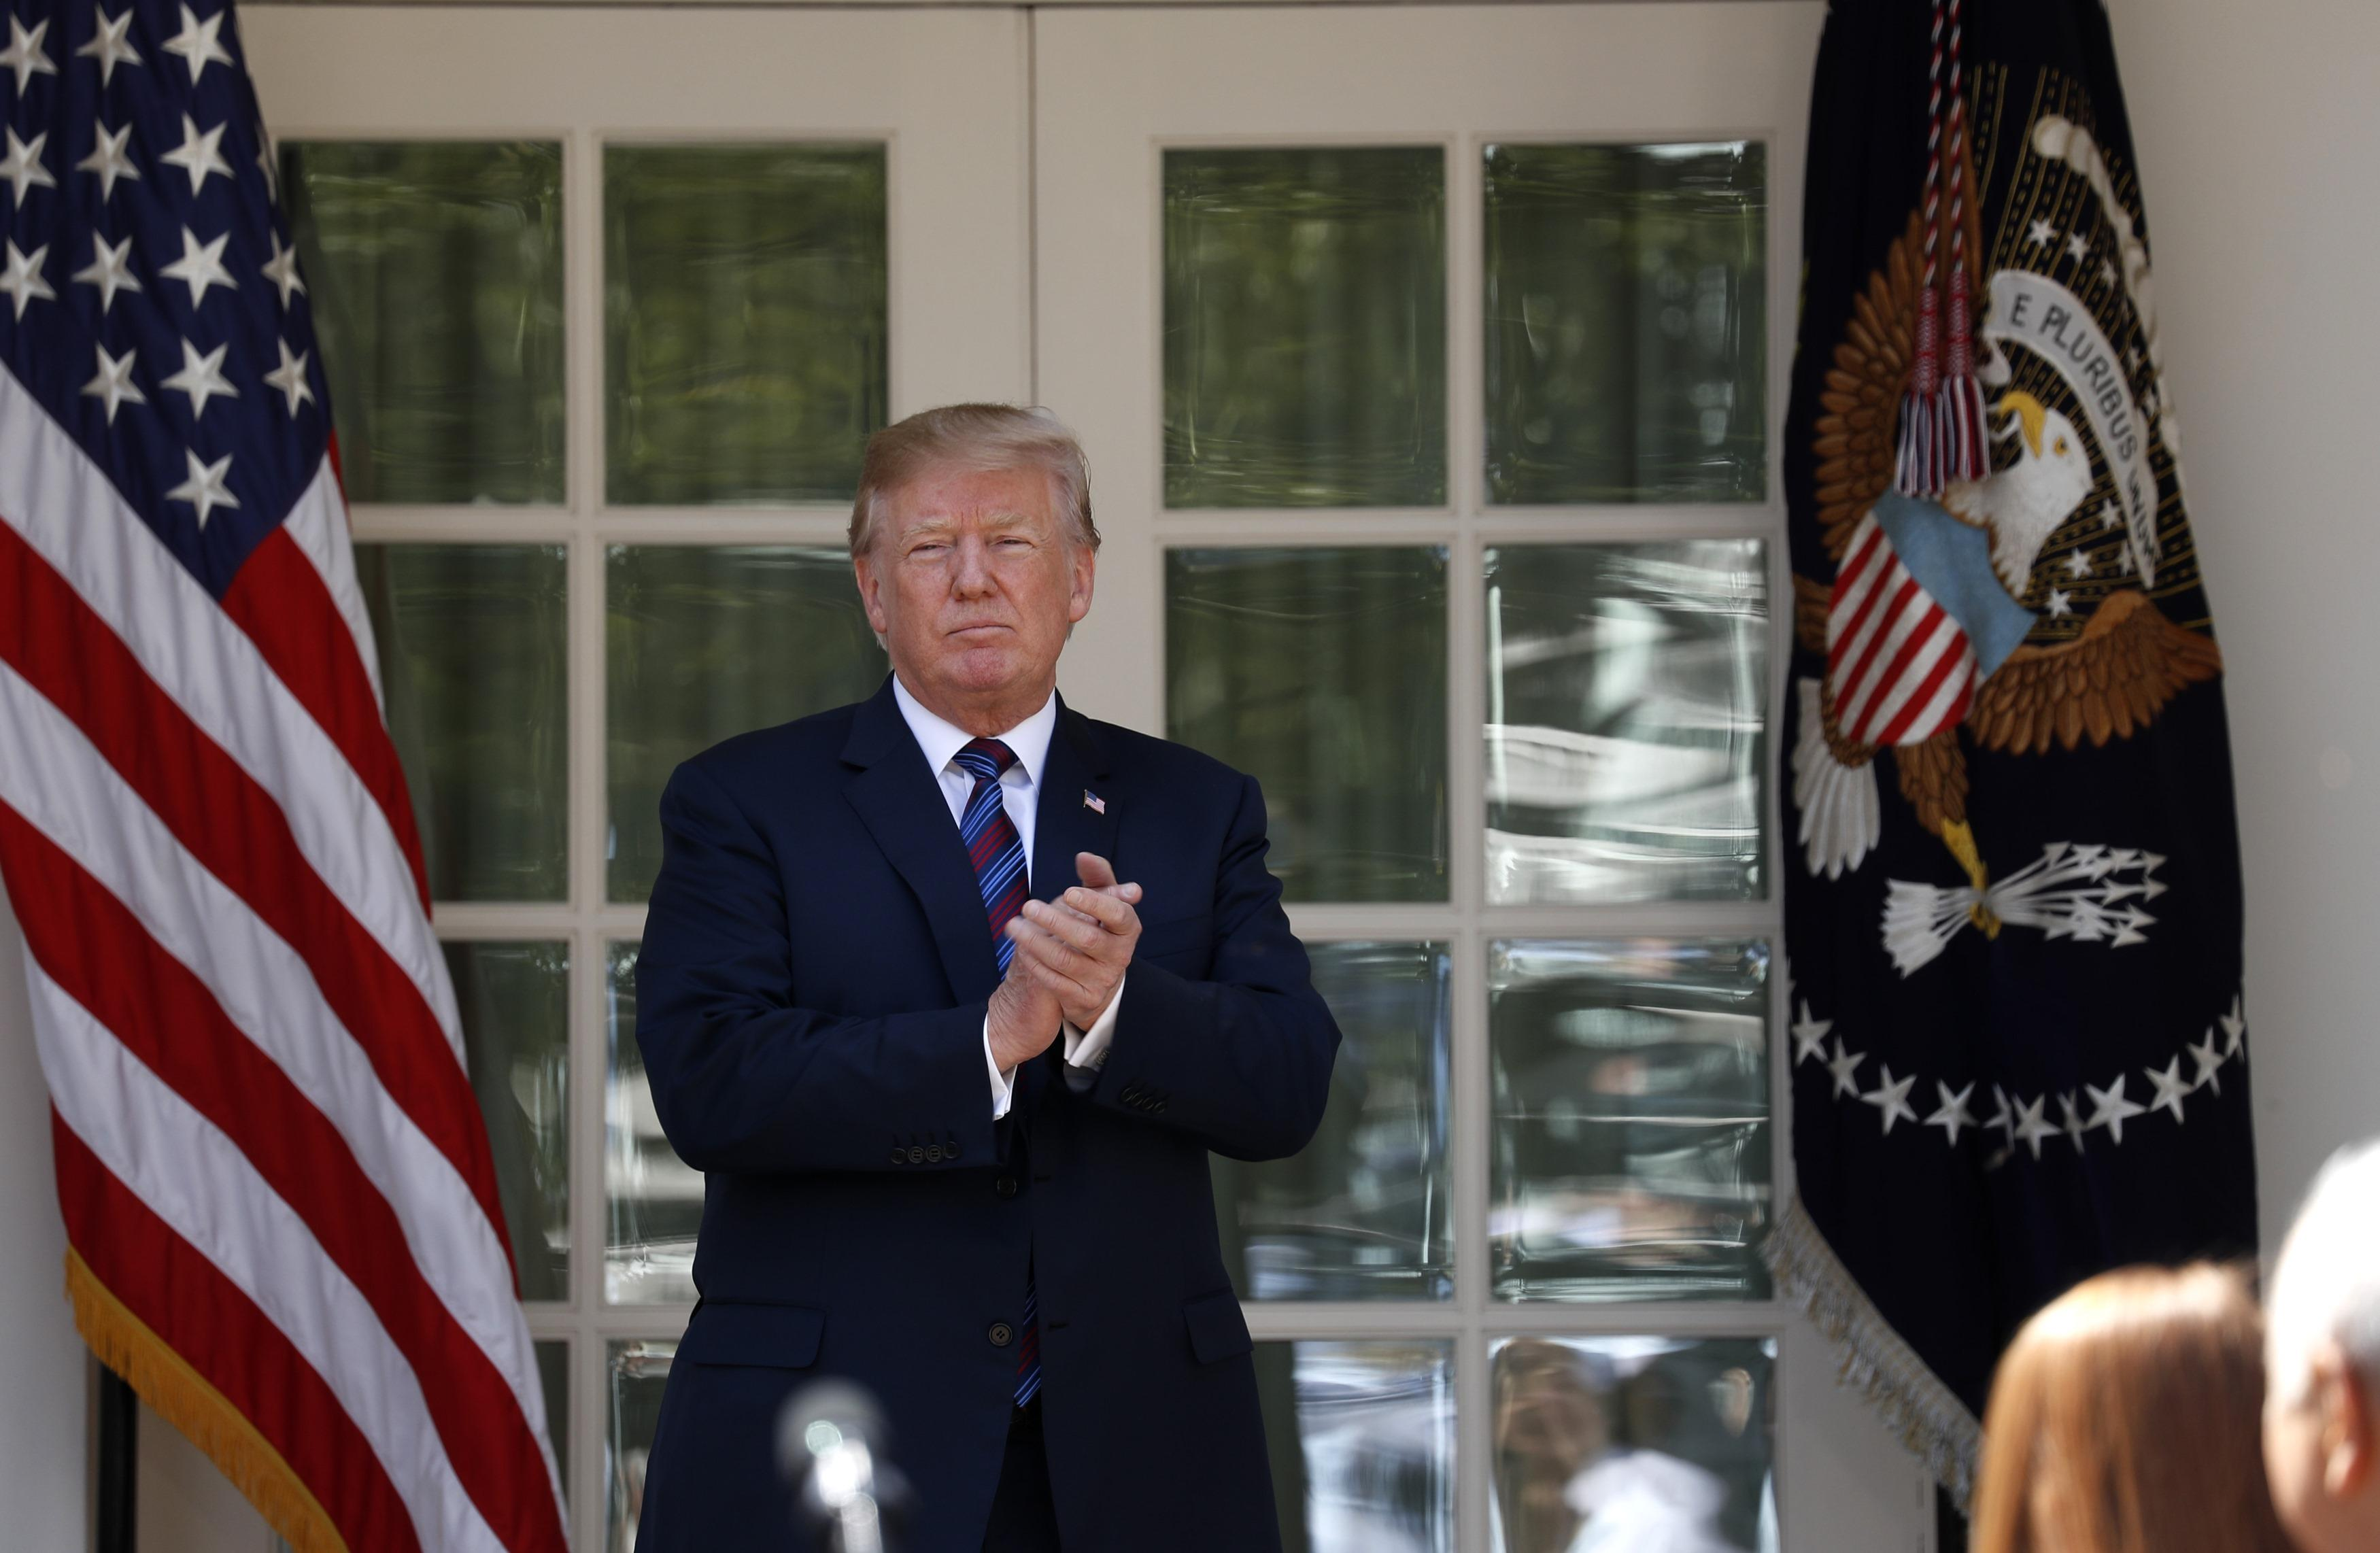 U.S. President Donald Trump departs after giving remarks on tax cuts for American workers during an event in the White House Rose Garden in Washington, U.S., April 12, 2018. Kevin Lamarque